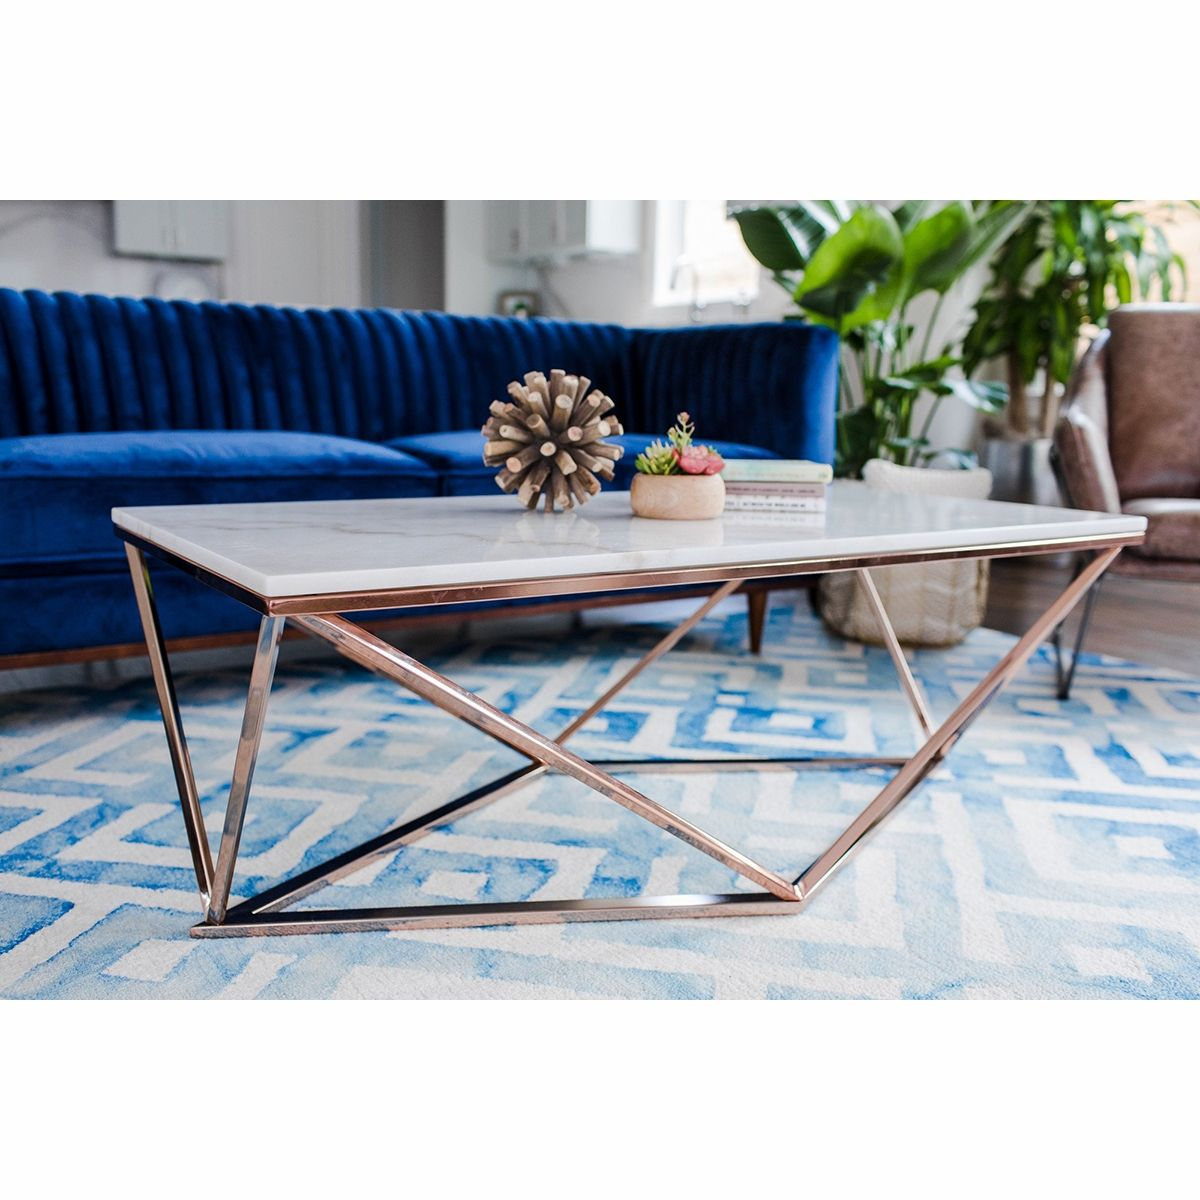 Aria Rose Gold Coffee Table Gold Coffee Table Coffee Table Living Room Coffee Table [ 1200 x 1200 Pixel ]